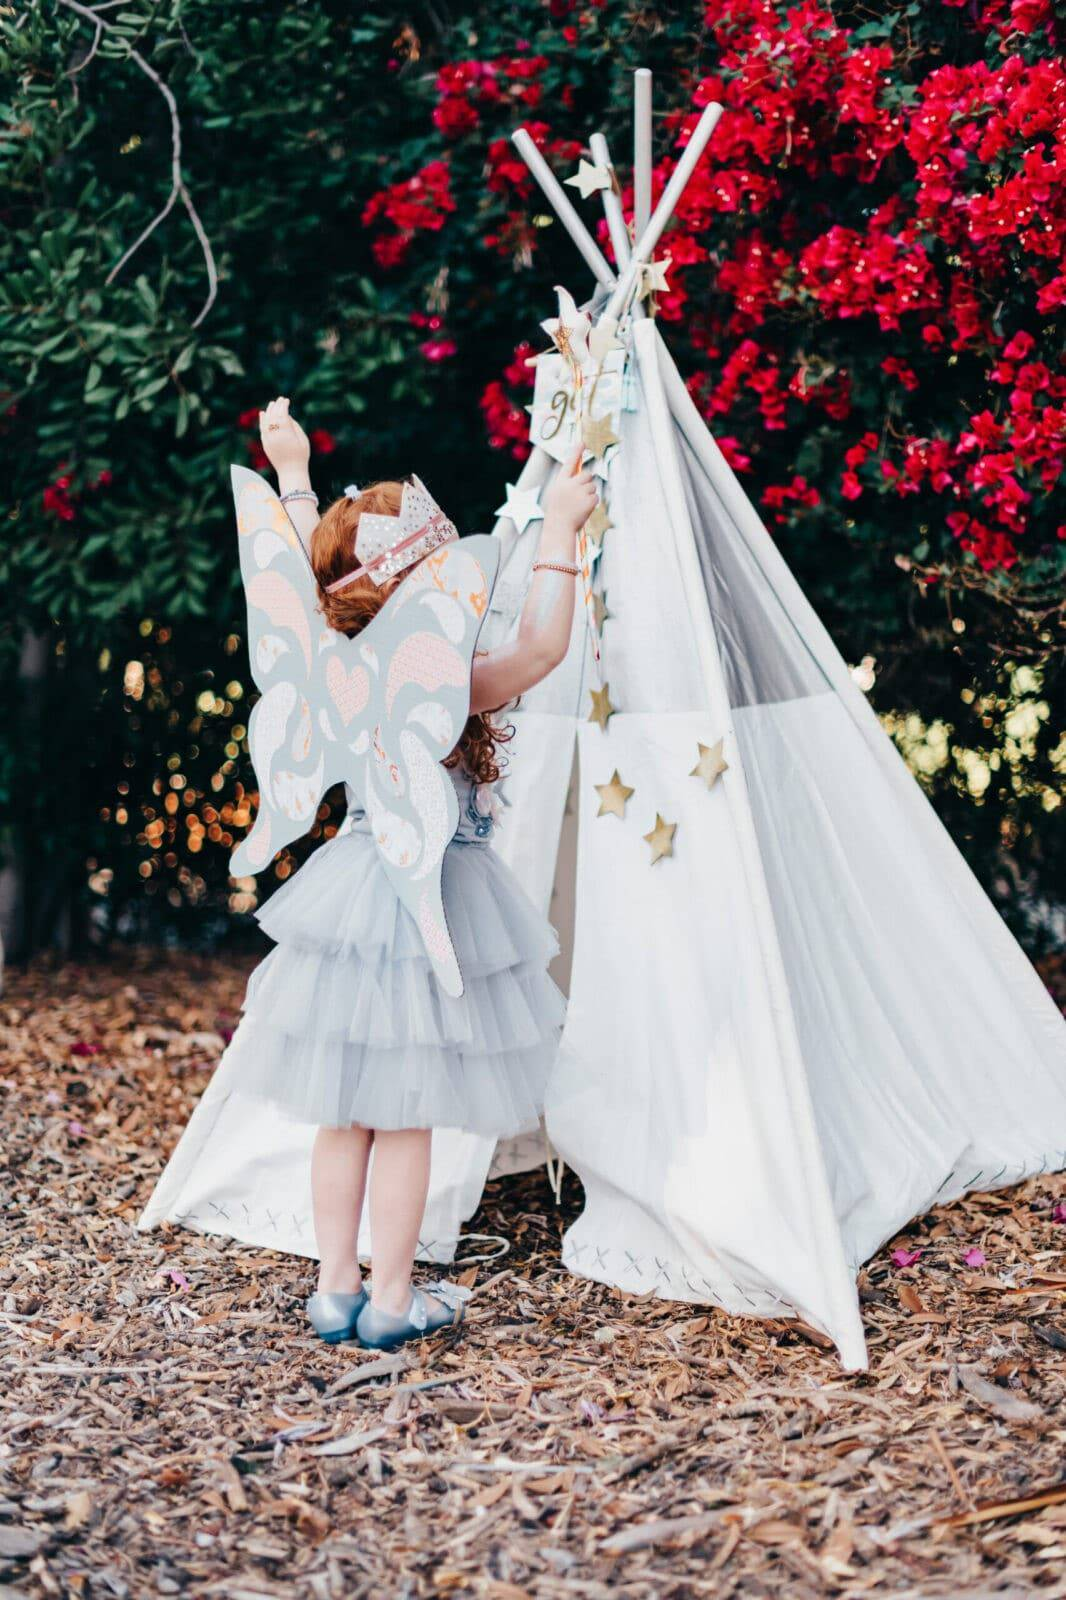 DIY fairy wings from cardboard boxes